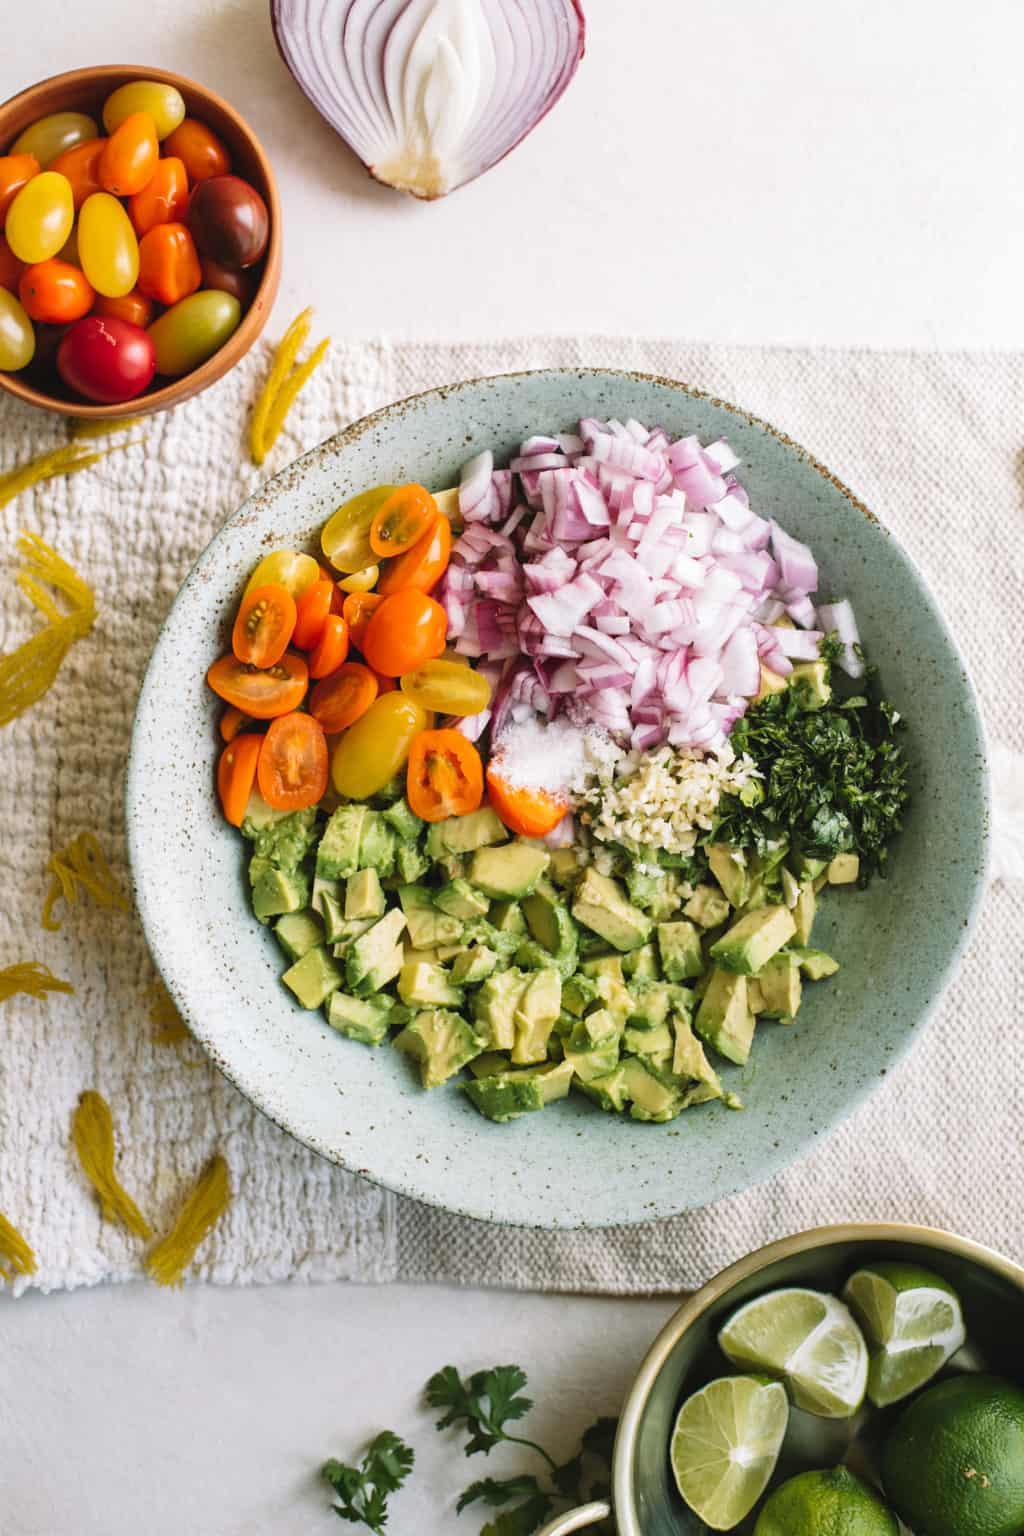 Blue bowl filled with avocado chunks, cilantro, red onion and heirloom cherry tomatoes.